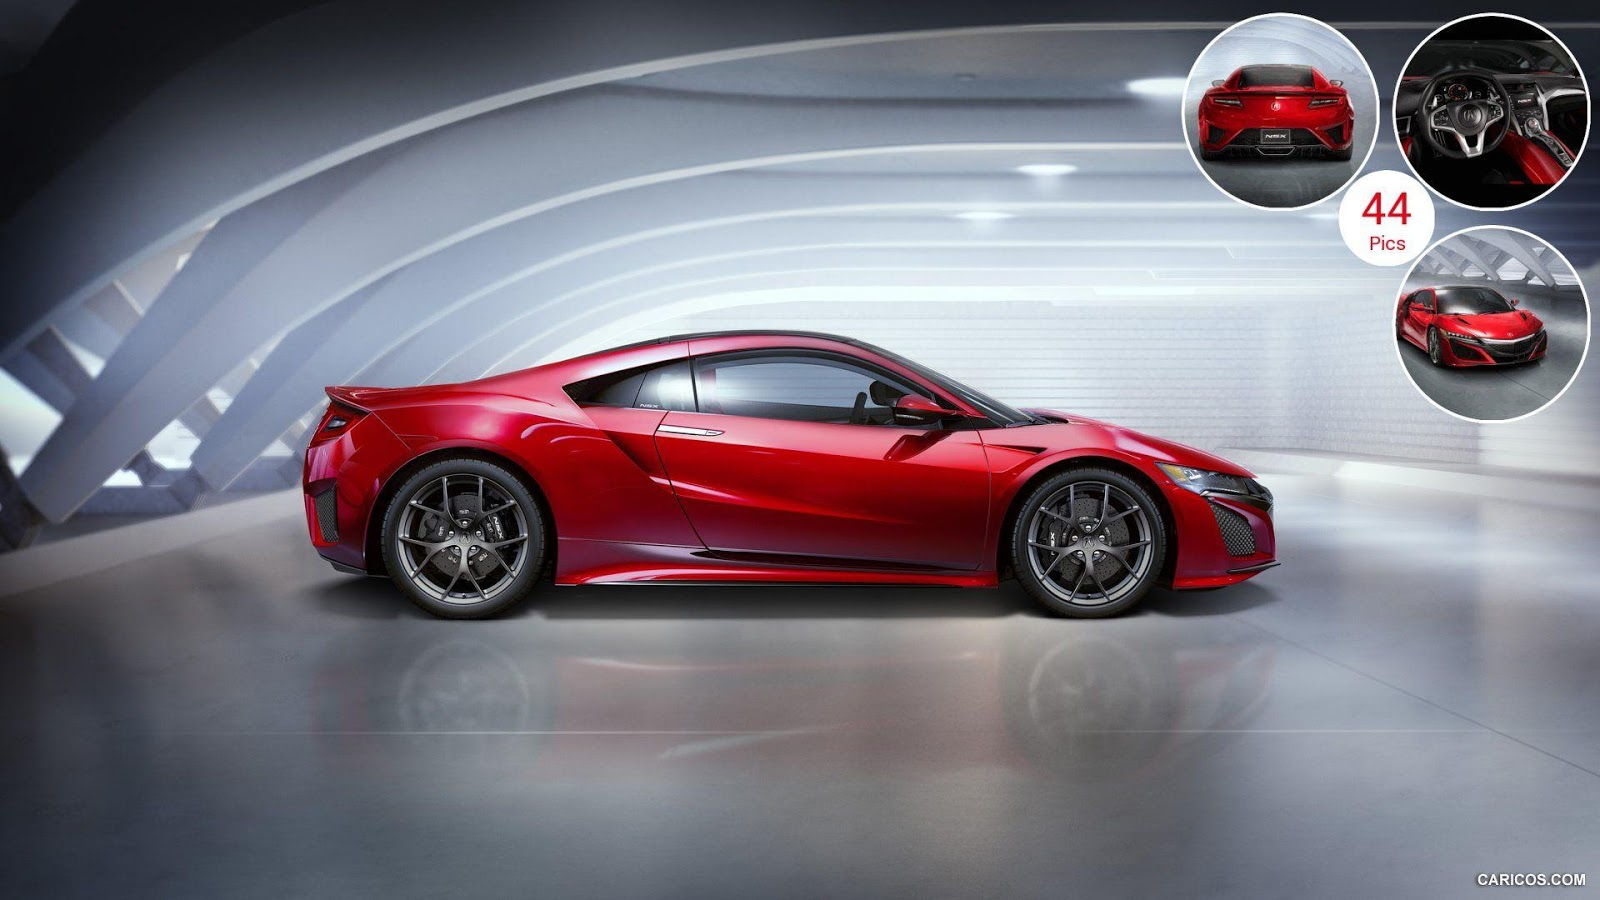 2016 Acura NSX car wallpapers hd